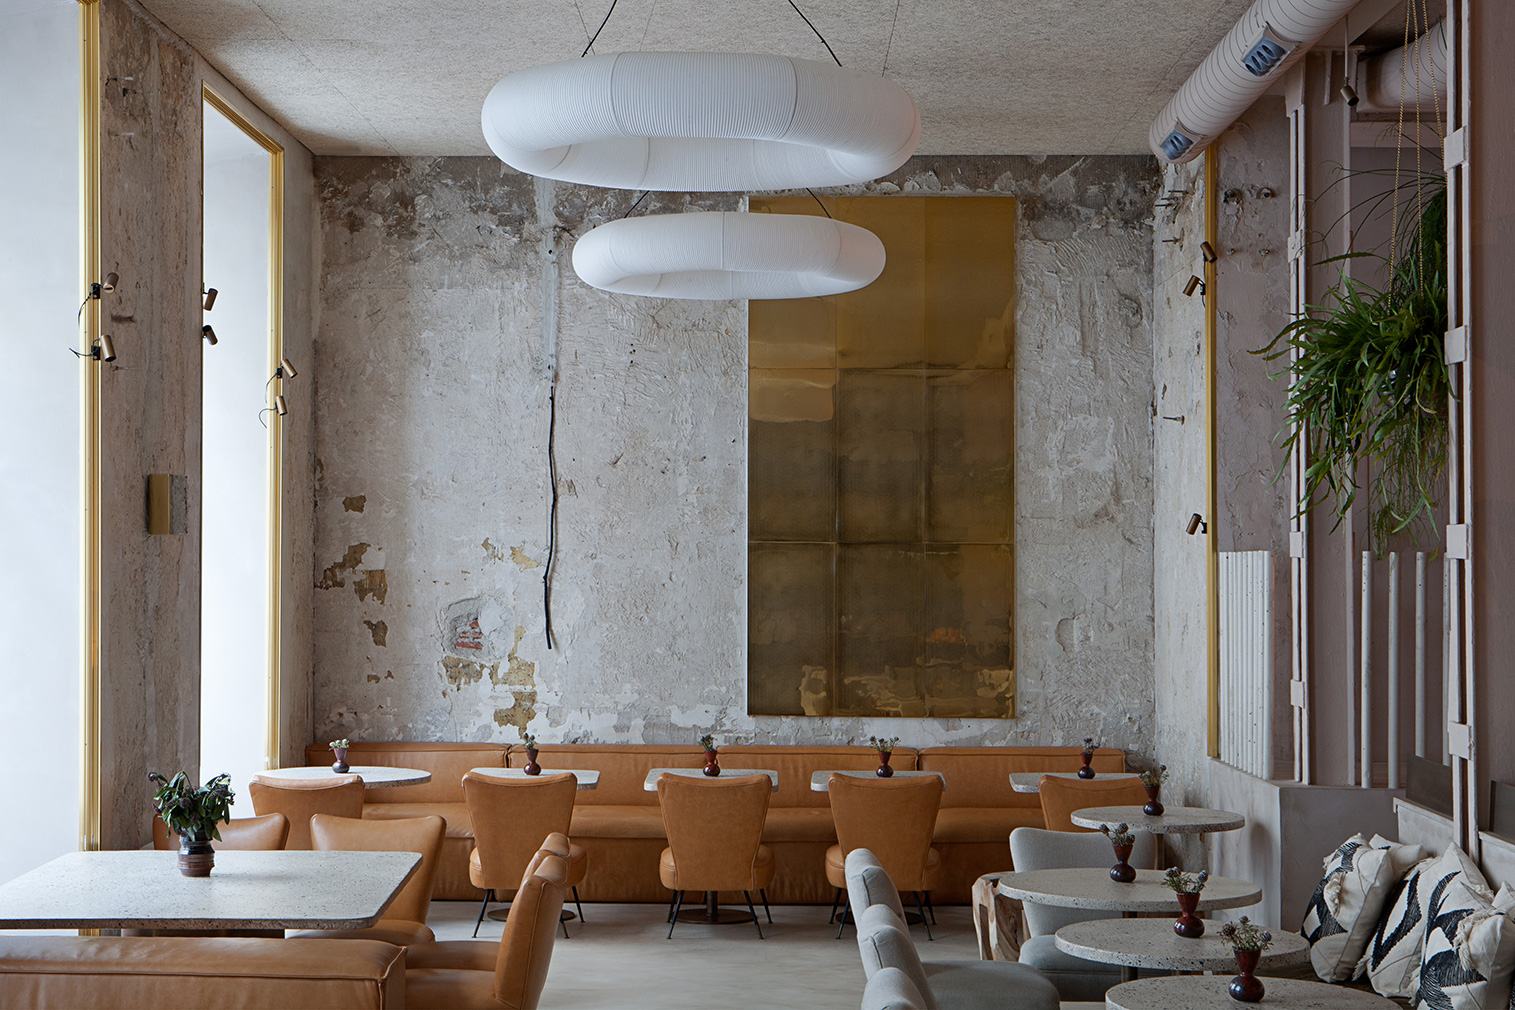 Madrid restaurant AÜAKT pays homage to the avocado